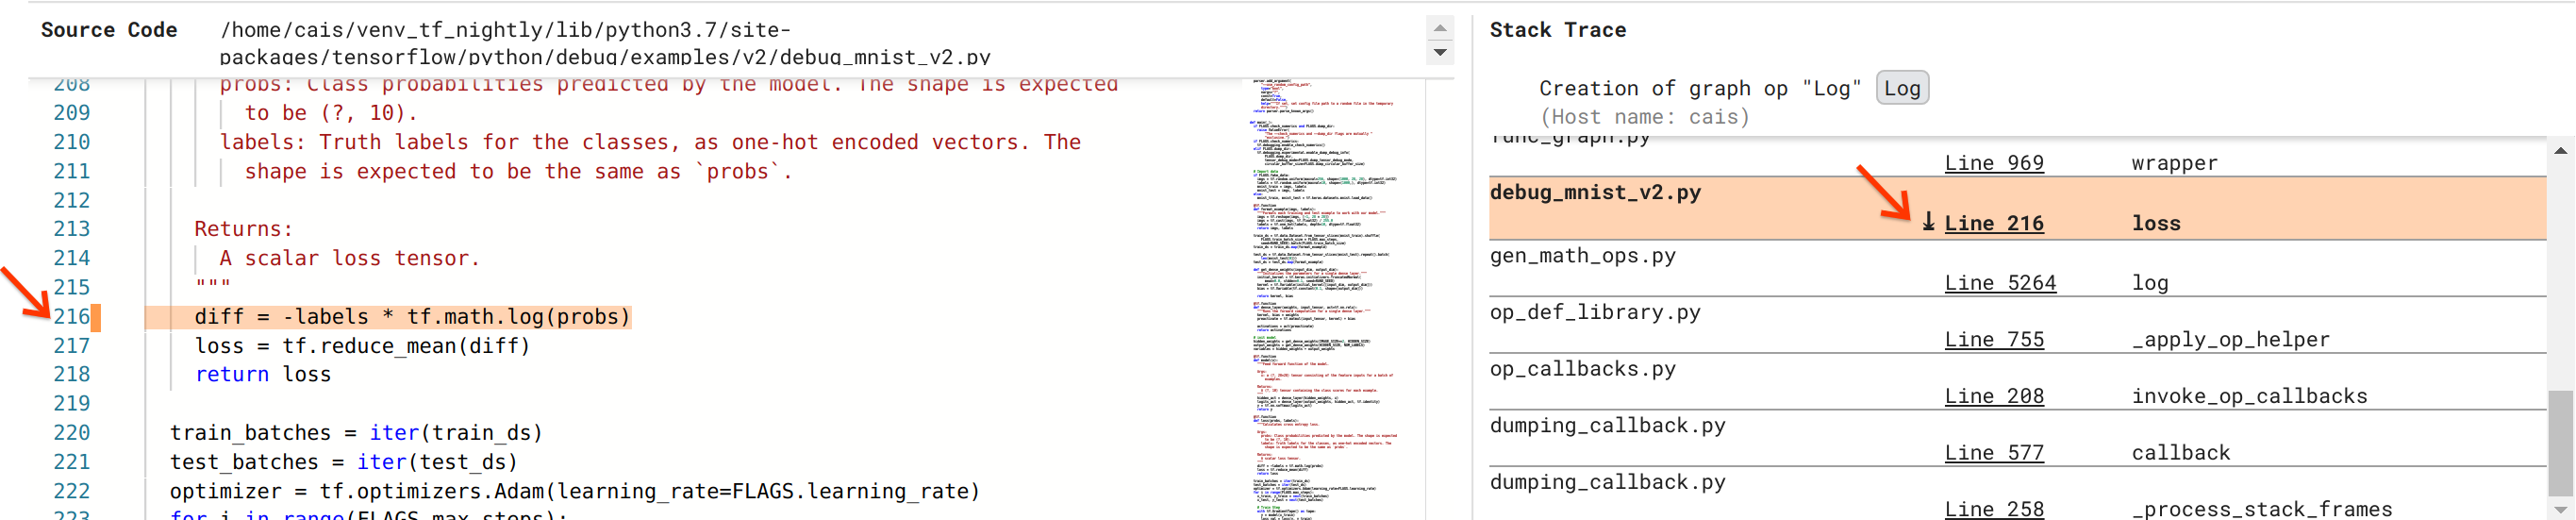 Debugger V2: Source code and stack trace